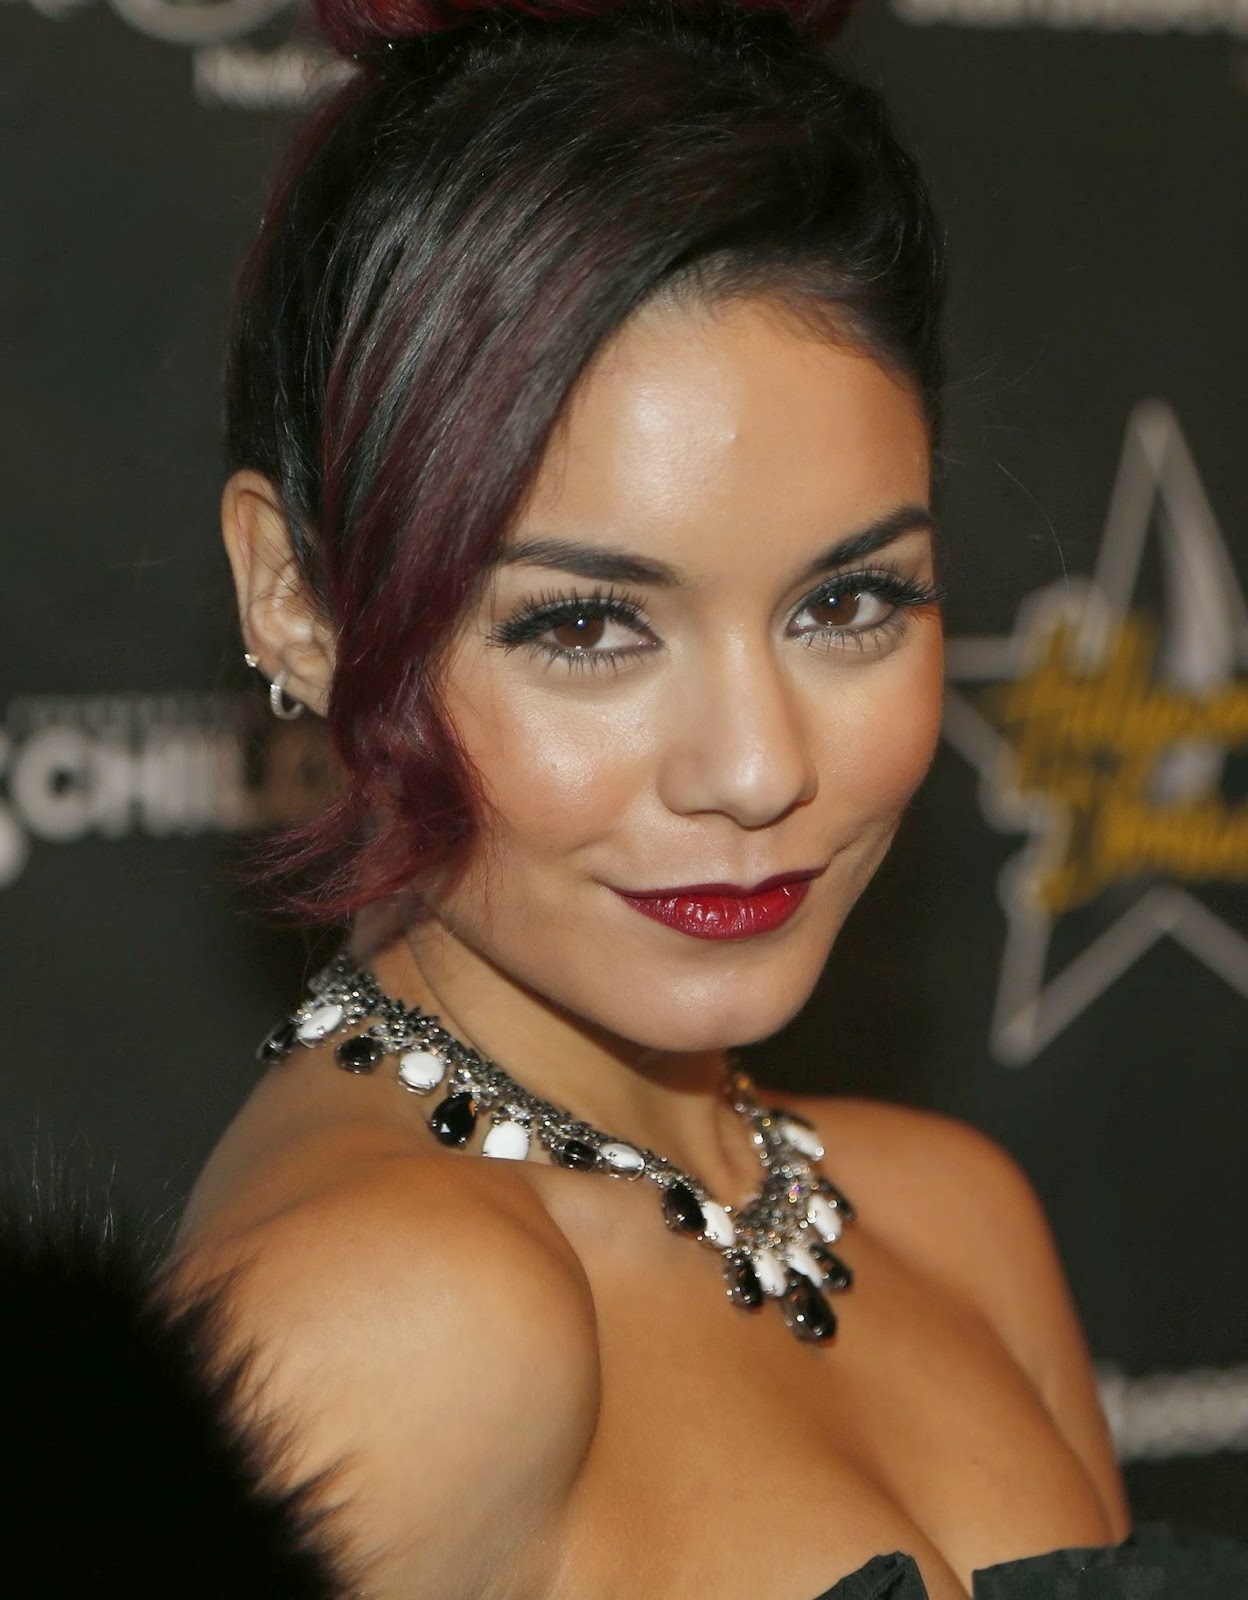 Vanessa Hudgens in Hollywood Domino Dallas charity event photo 1